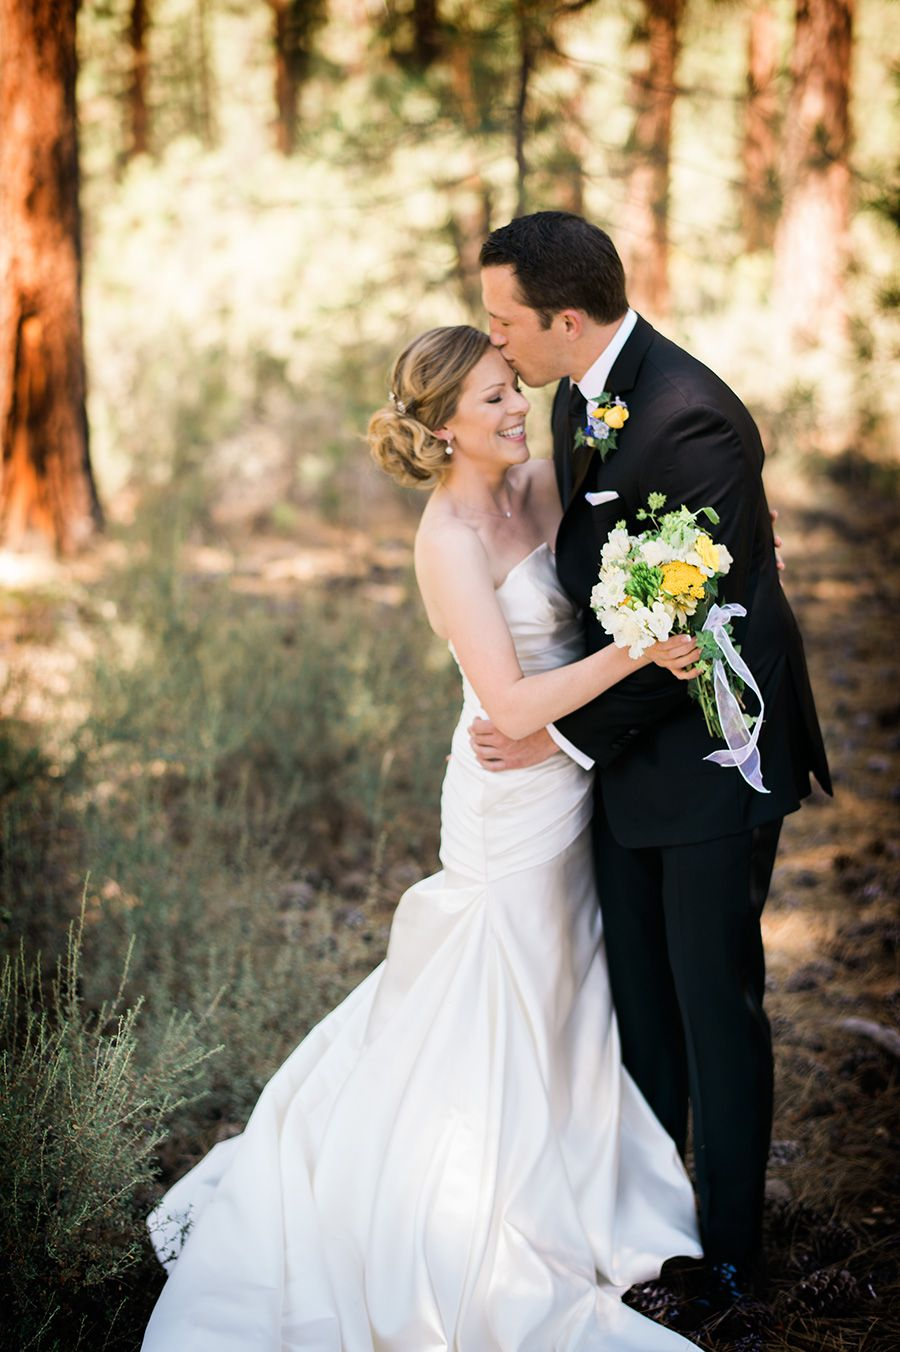 Weddings at Black Butte Ranch - 6620